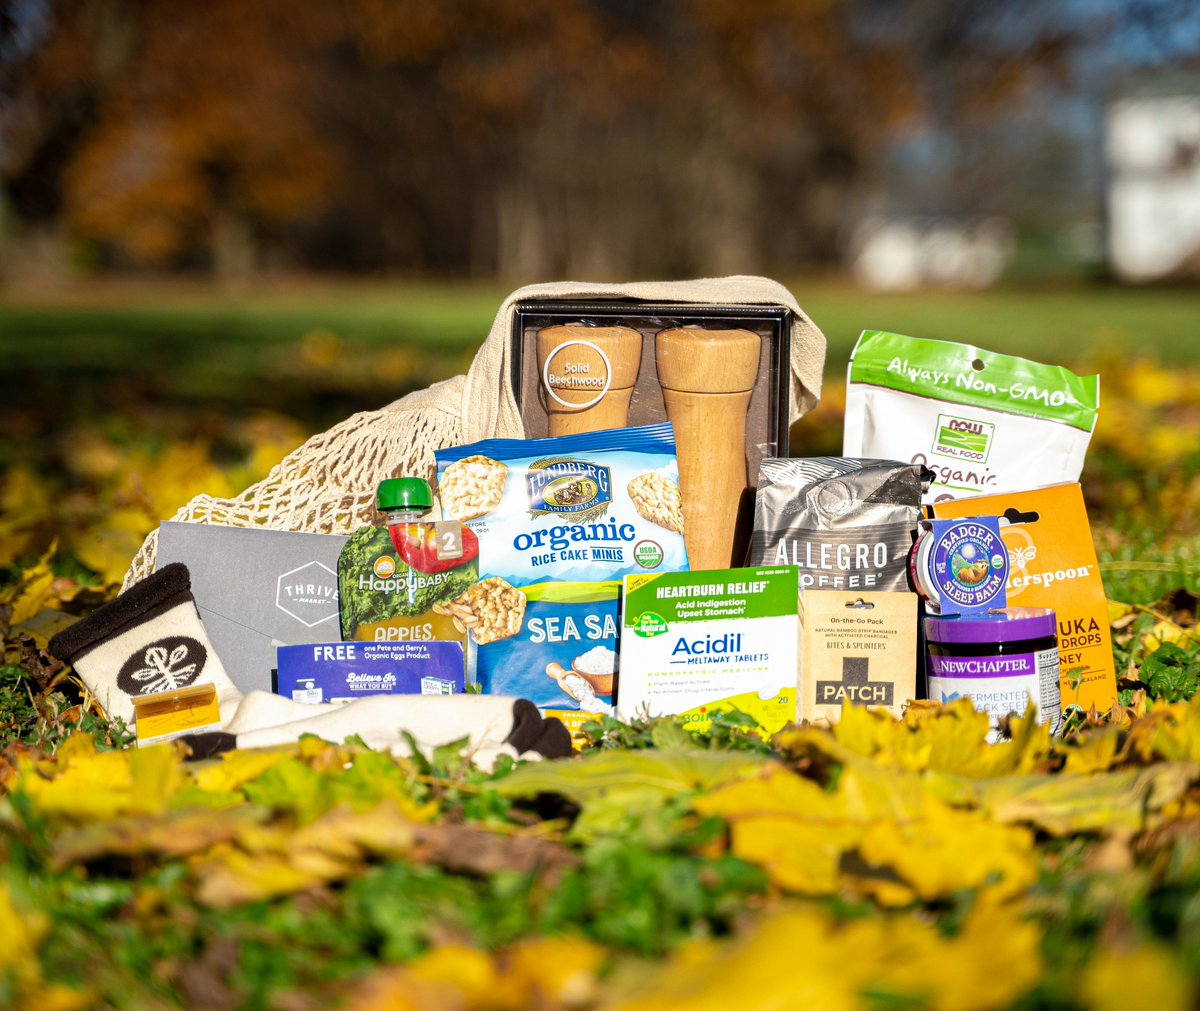 We can't transform our #food system alone, and that's why we're asking for your support on #GivingTuesday. Give $75+ and receive this Organic Heroes gift box with products from your favorite brands like @thrivemarket, @wedderspoonbuzz & @MaggiesOrganics.